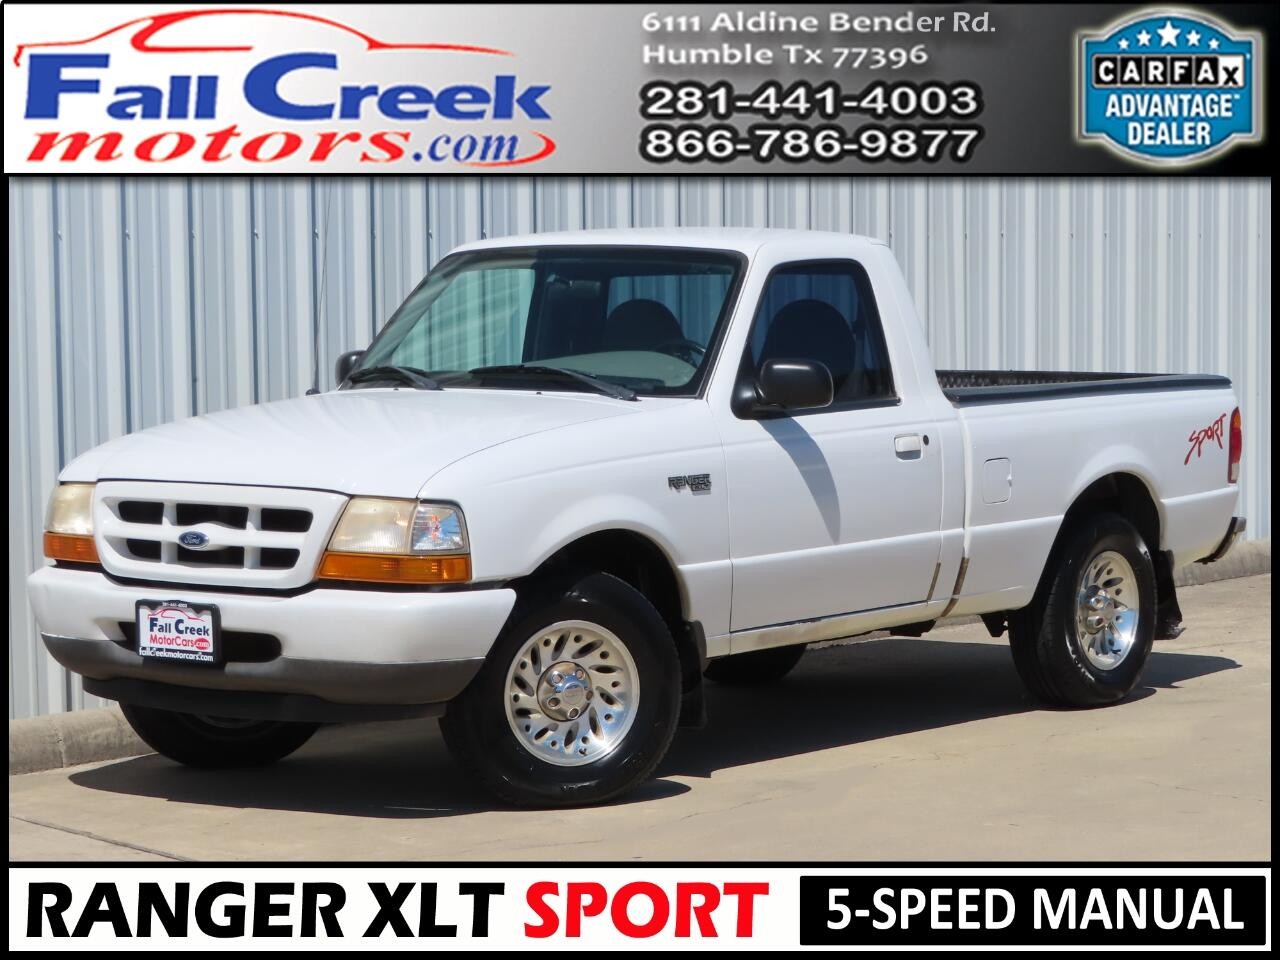 1999 Ford Ranger Sport Reg. Cab Short Bed 2WD